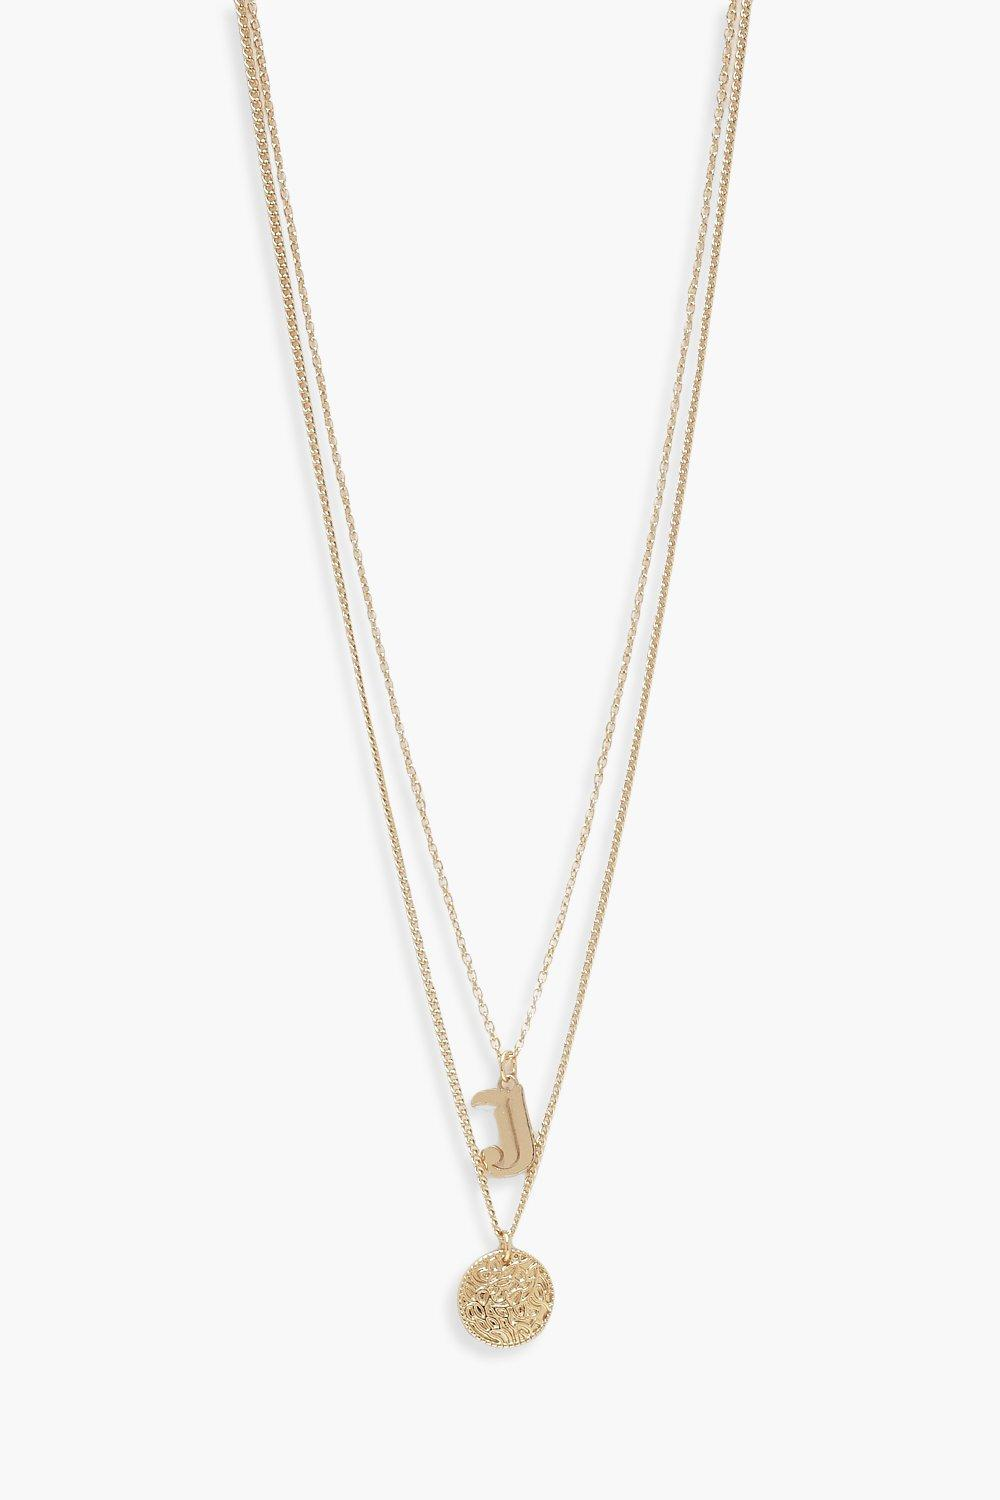 boohoo Womens J Initial & Circle Layered Necklace - Metallics - One Size, Metallics